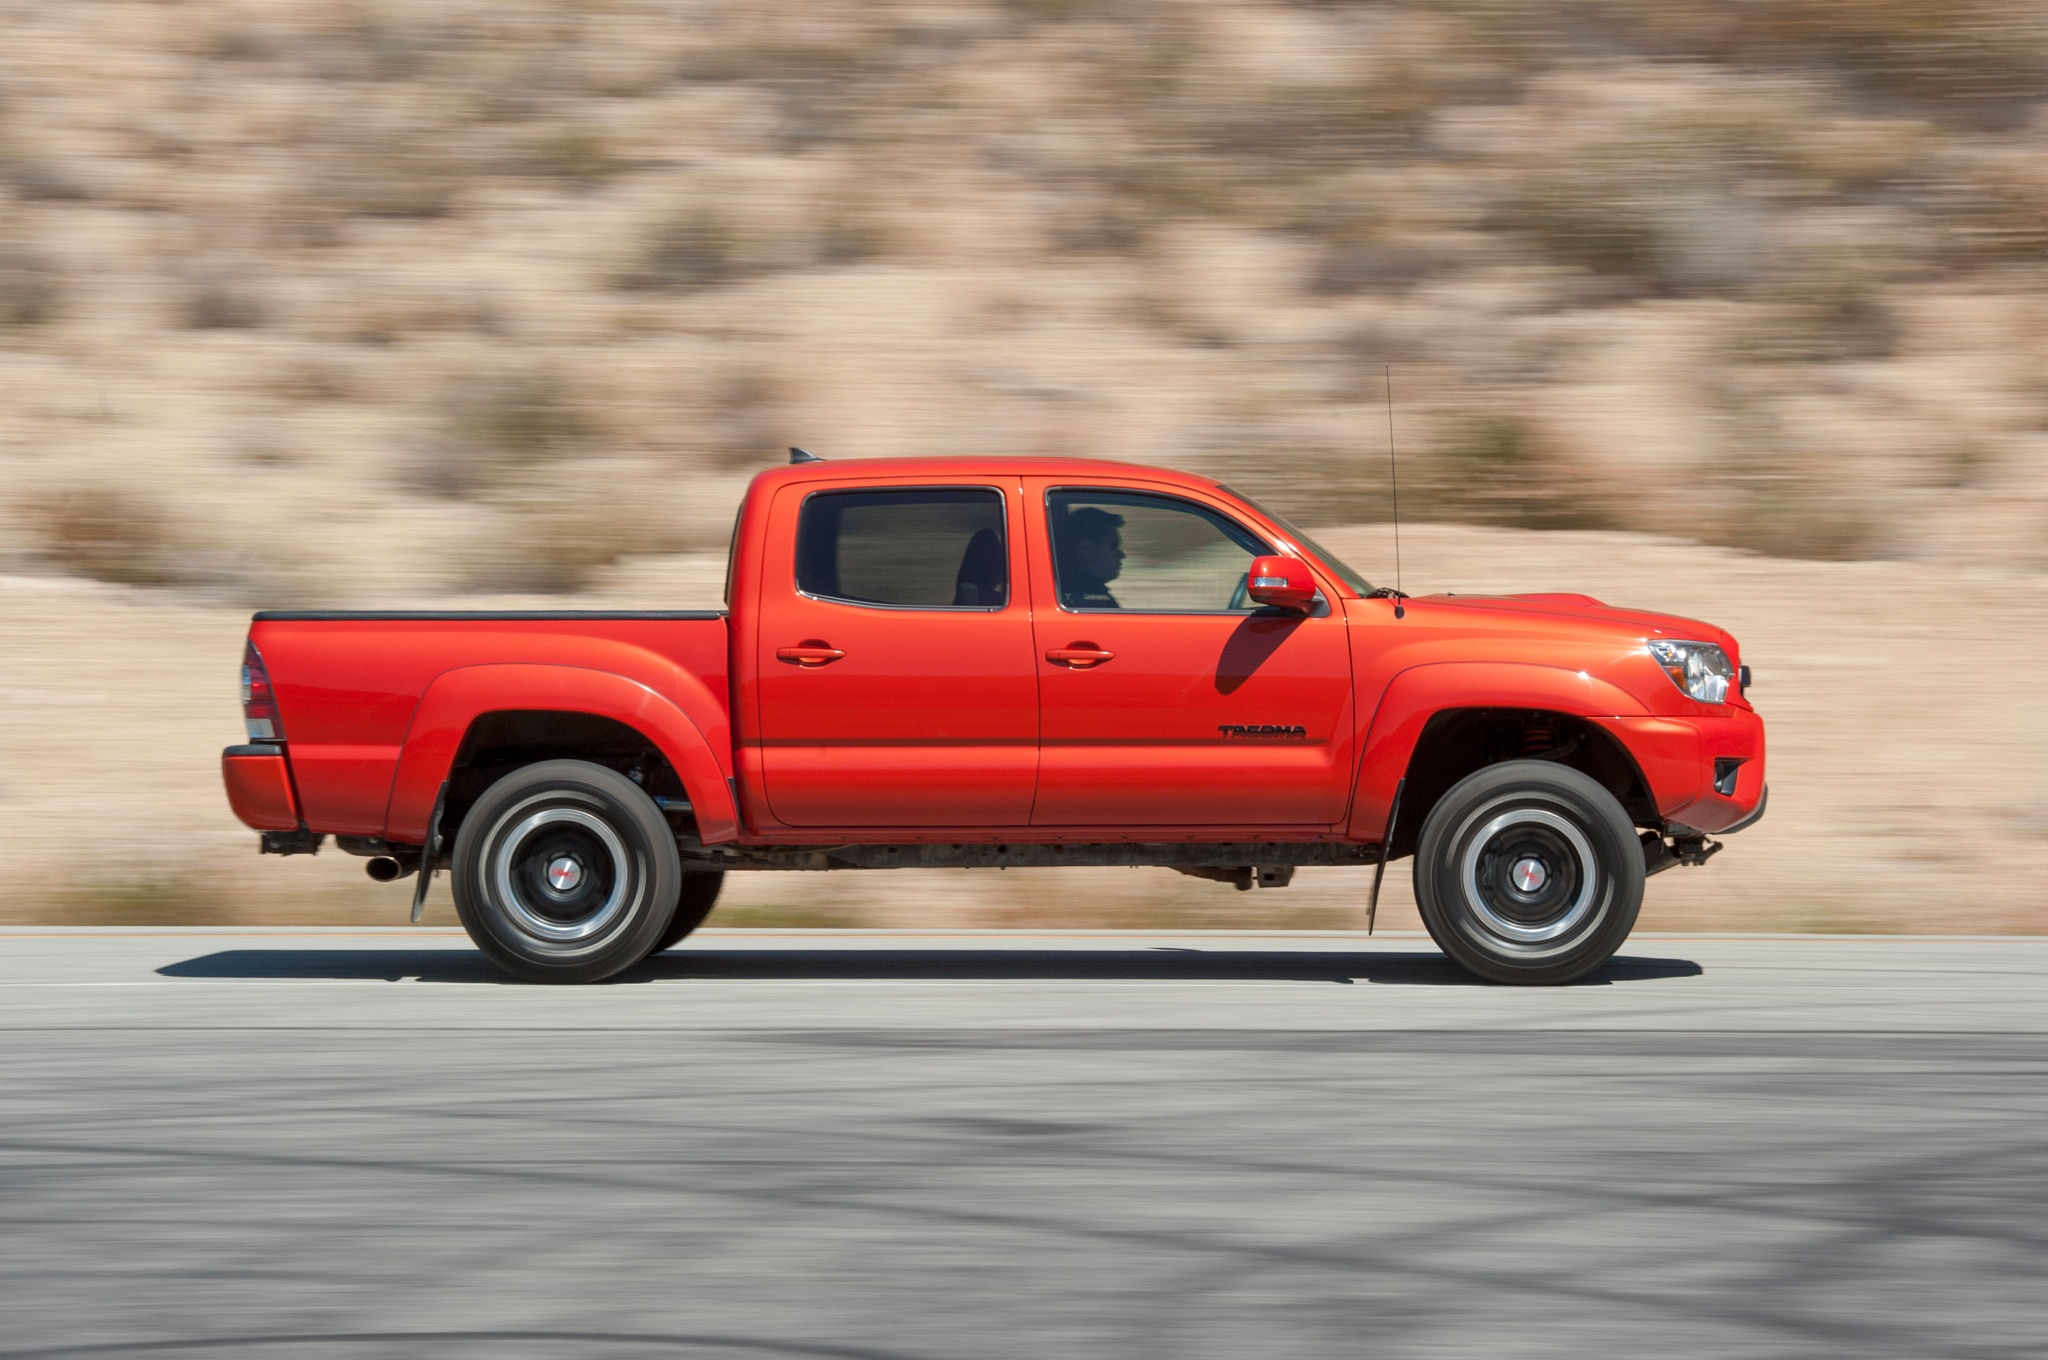 toyota hilux pickup spied could preview new toyota tacoma. Black Bedroom Furniture Sets. Home Design Ideas